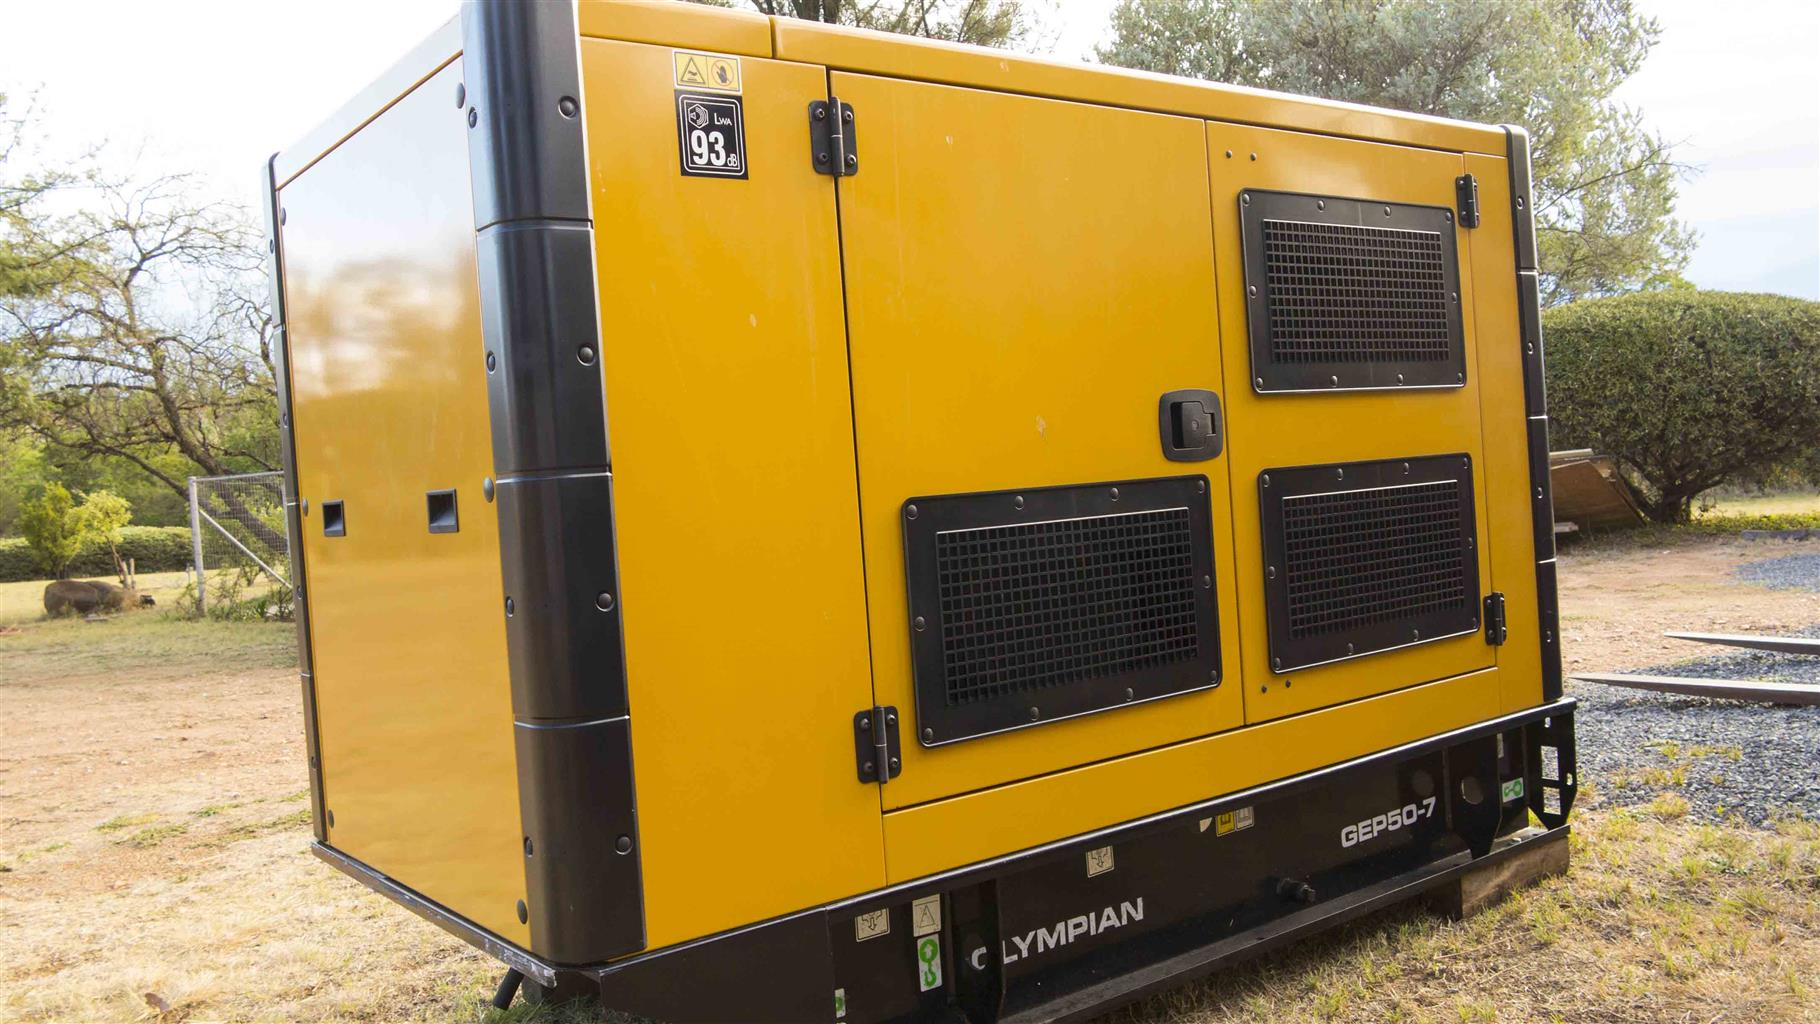 Brand New CAT 50 kVA Diesel Genset, enclosed - Top Quality Generator - two available